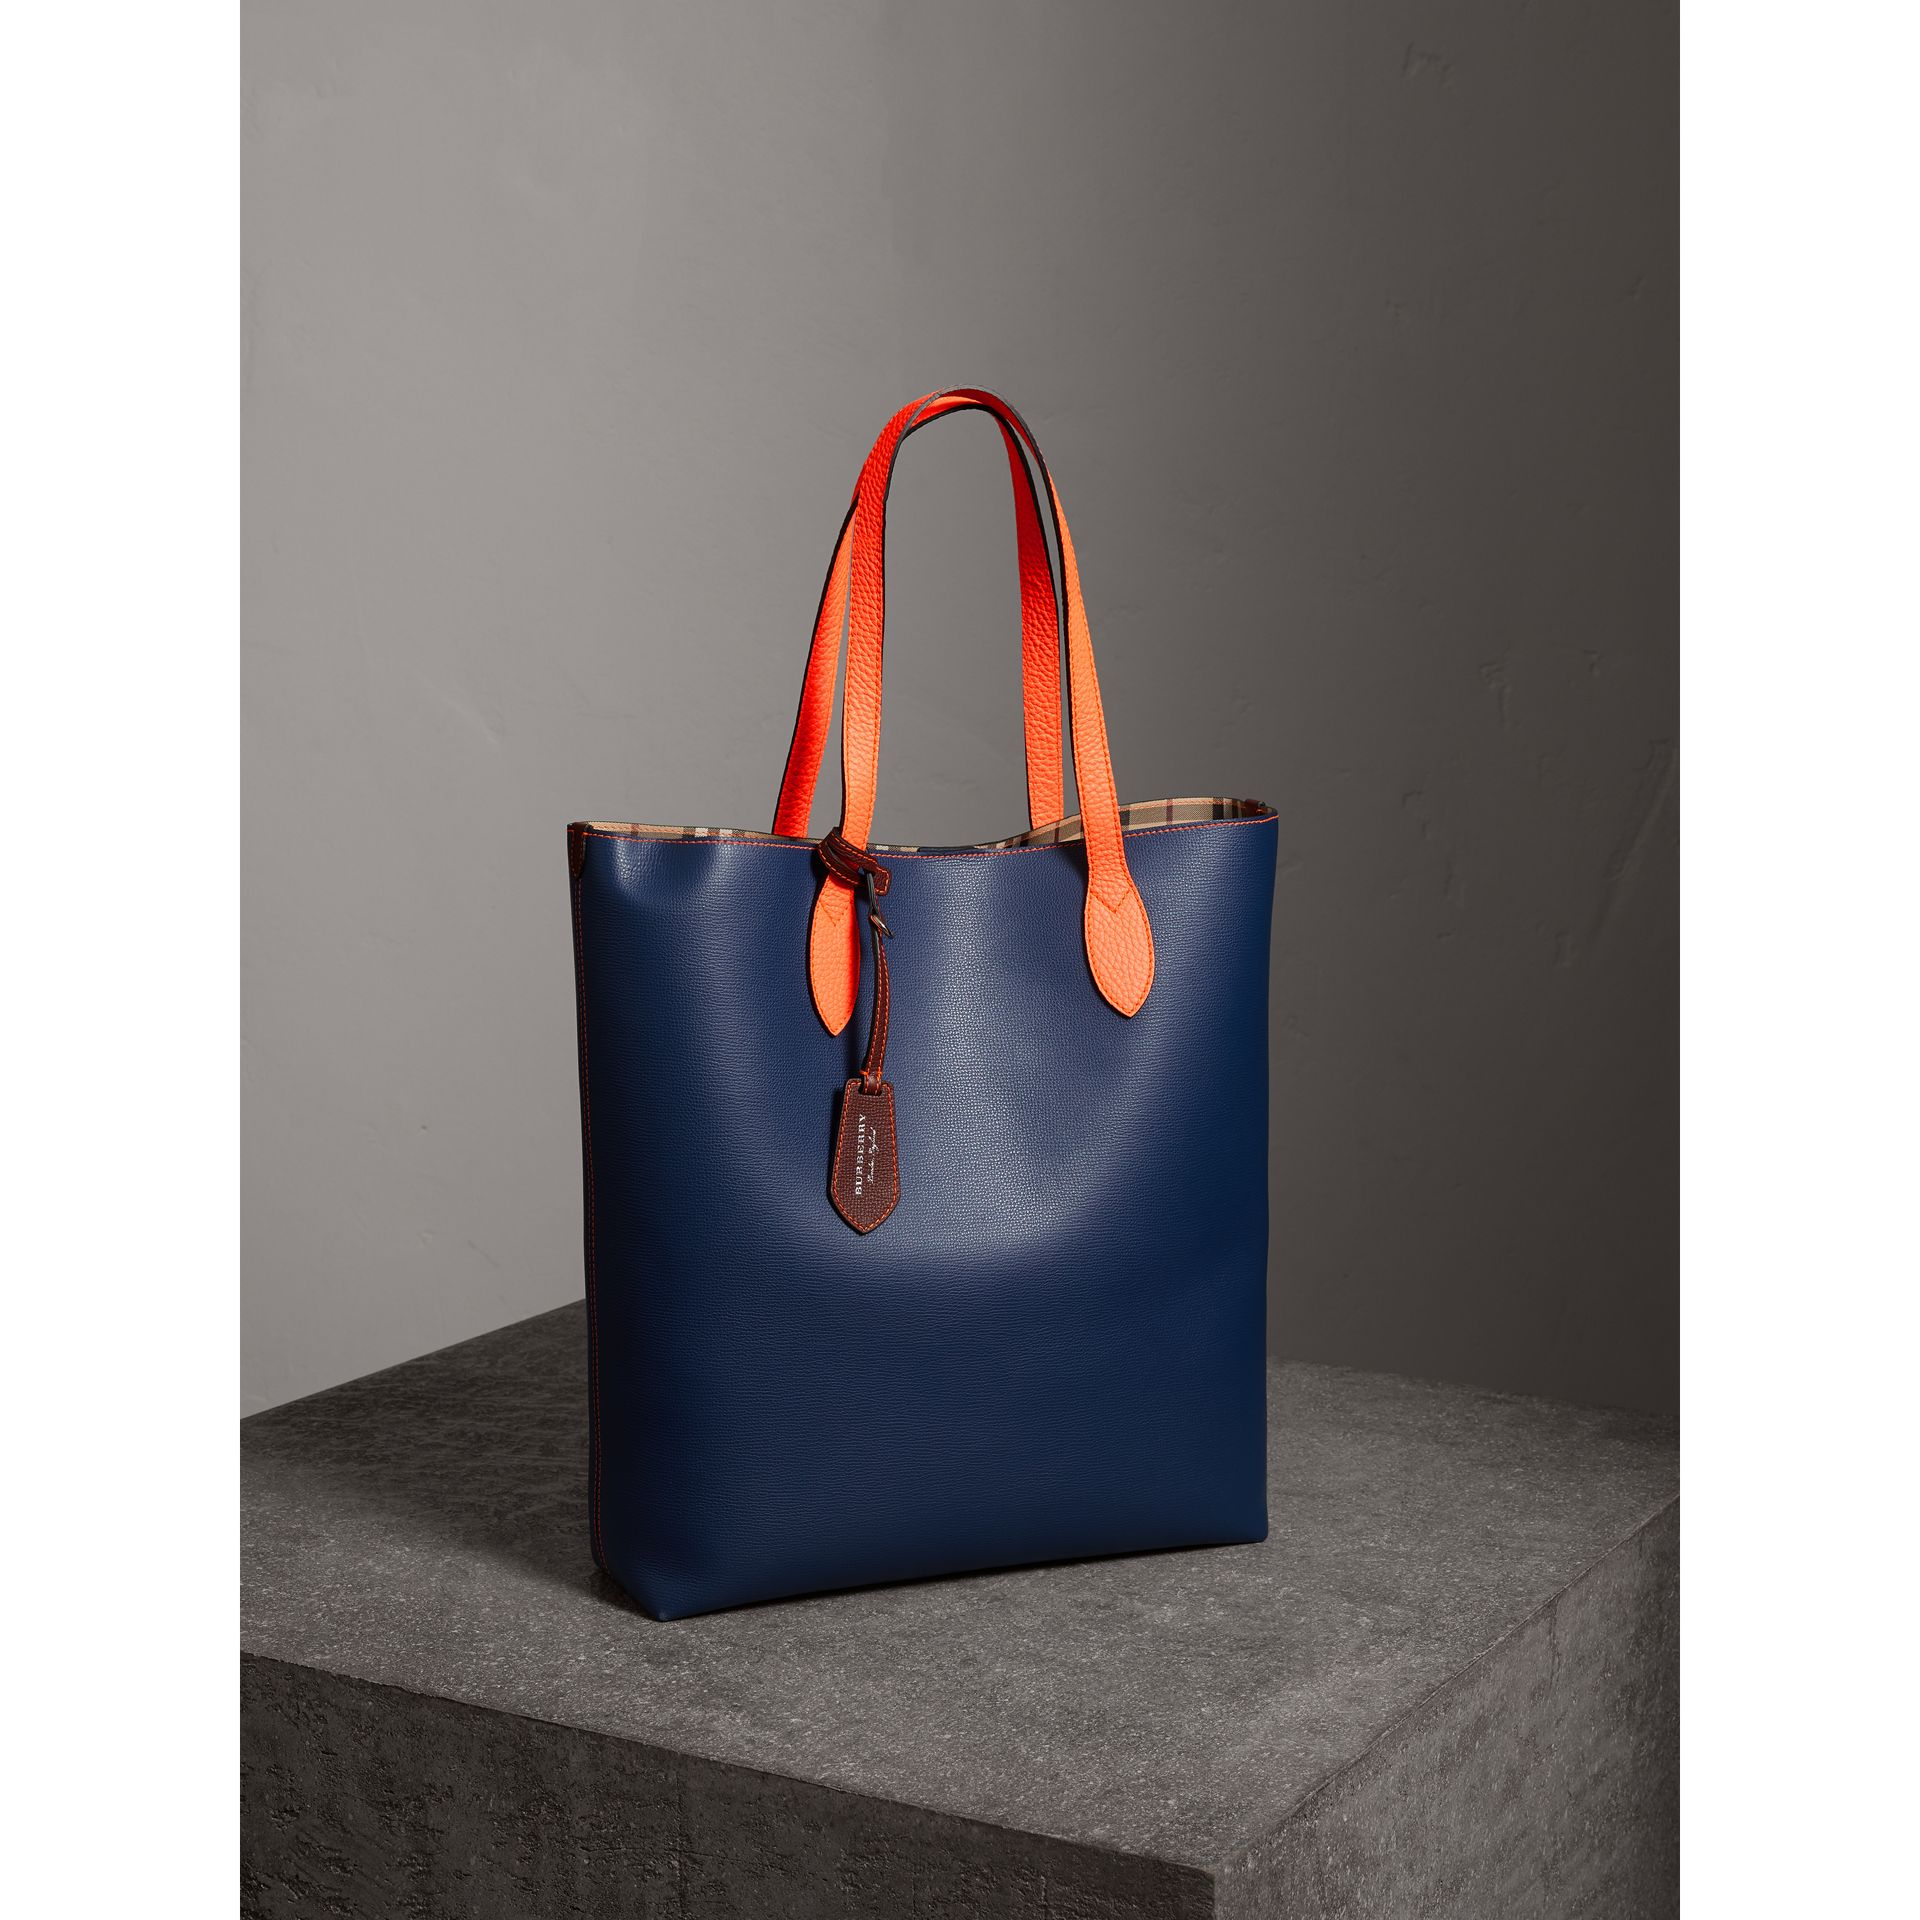 Medium Two-tone Coated Leather Tote in Dark Ultramarine | Burberry United Kingdom - gallery image 5